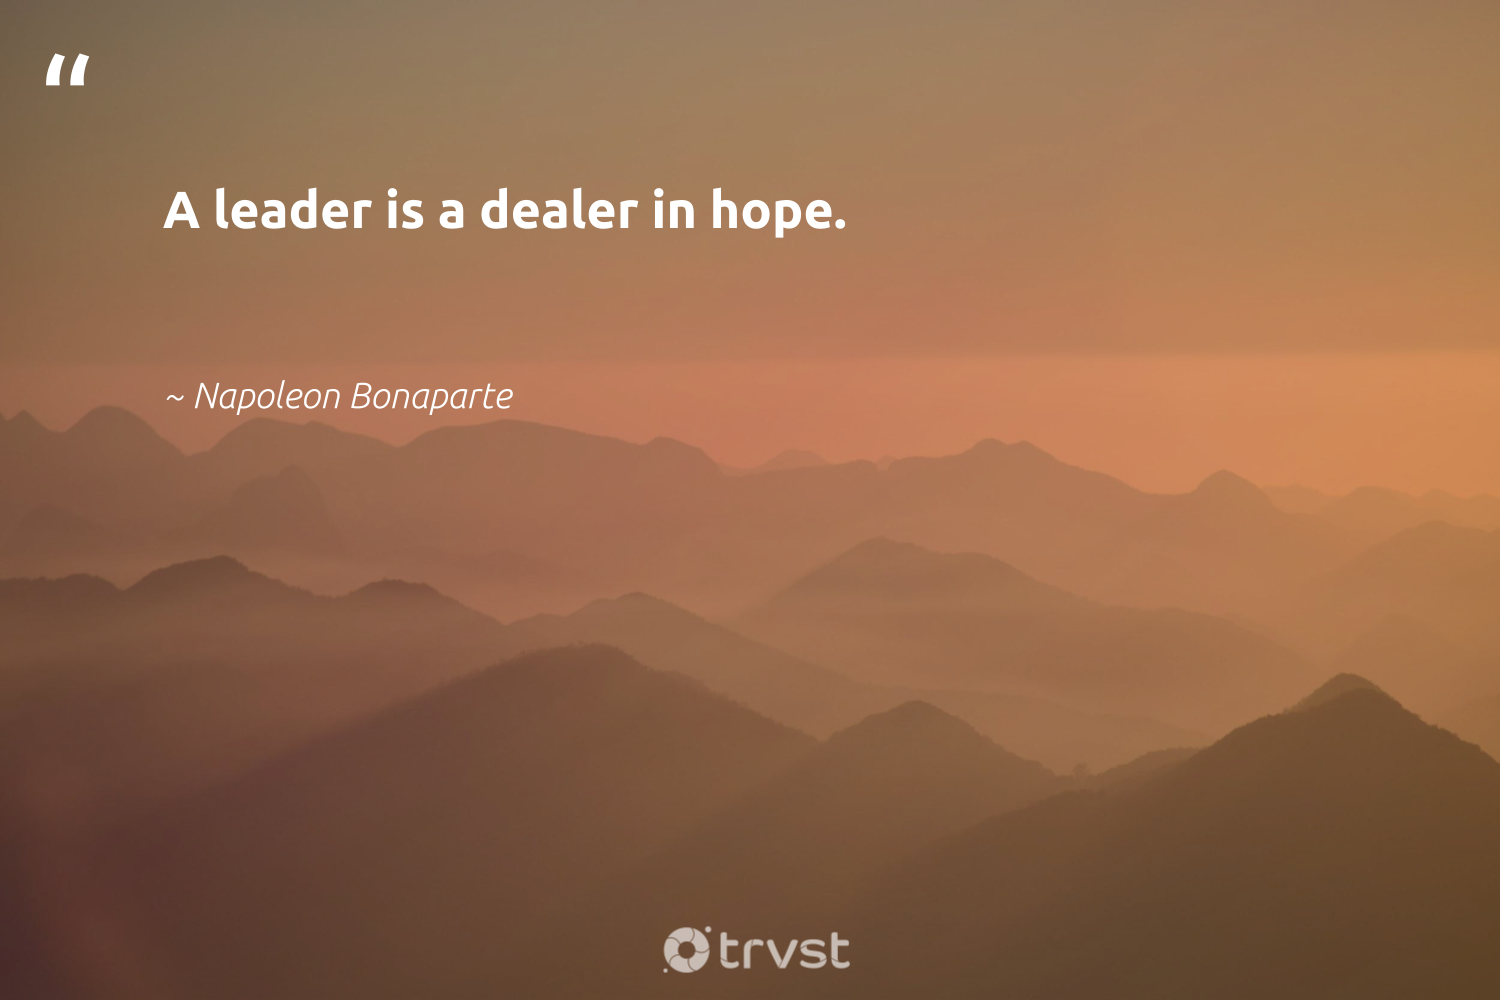 """A leader is a dealer in hope.""  - Napoleon Bonaparte #trvst #quotes #hope #begreat #gogreen #softskills #beinspired #nevergiveup #collectiveaction #futureofwork #bethechange #thinkgreen"